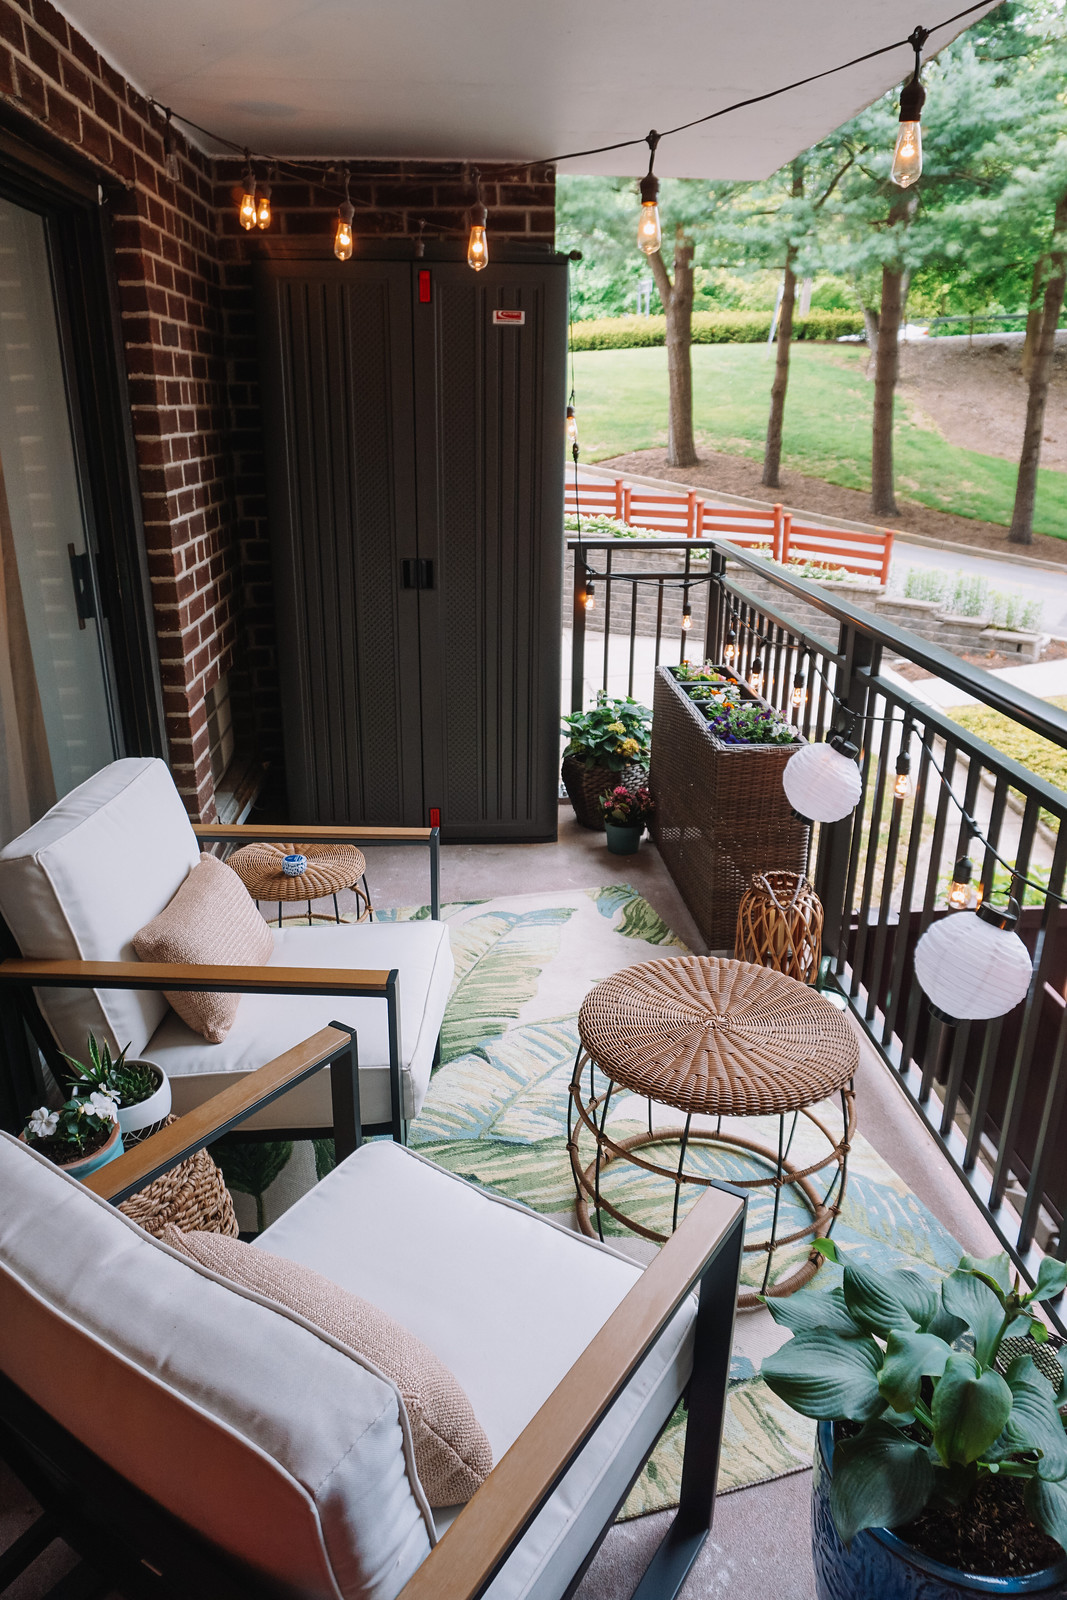 My Apartment Balcony Reveal + More Affordable Outdoor Inspiration | Target Outdoor Furniture | Outdoor Palm Print Rug | Wicker Furniture Inspiration | Outdoor Oasis String Lights | How to Decorate a Small Balcony | Patio Ideas | Deck Inspiration | Outdoor Living Room | Outdoor Decorating Ideas | Terrace | Porch | Patio Renovation | Balcony Remodel